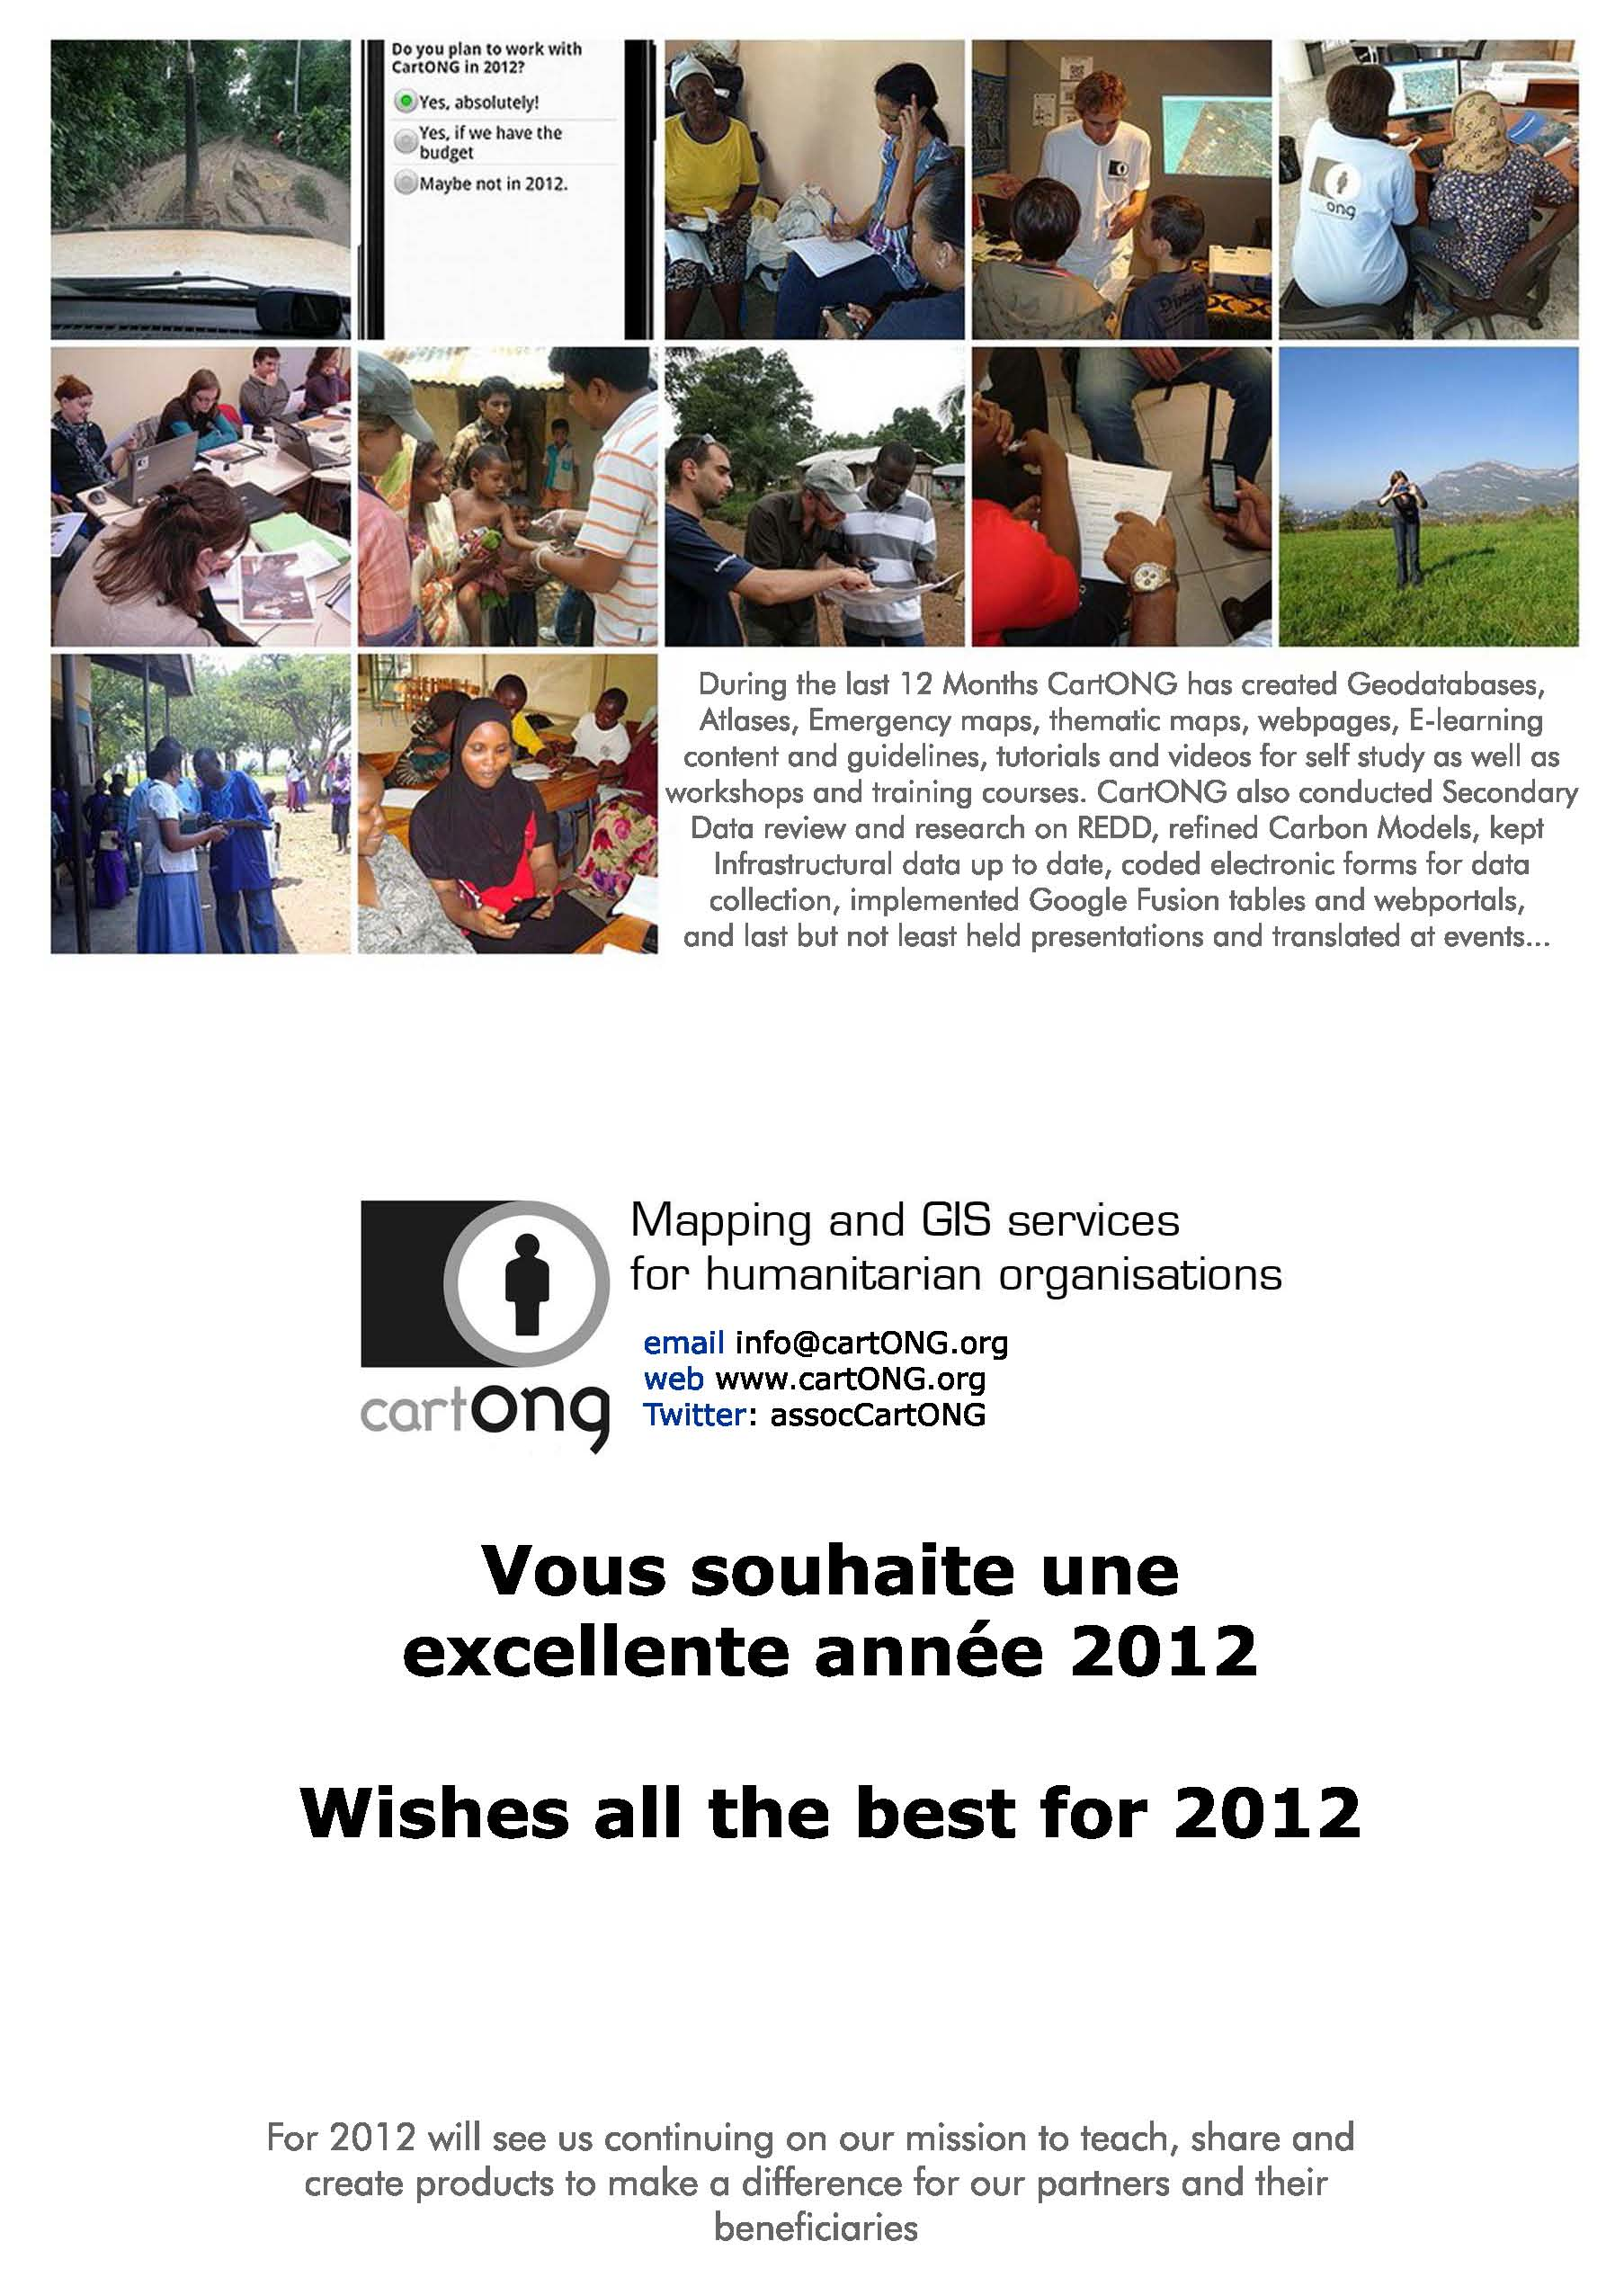 SeasonsGreetings2012